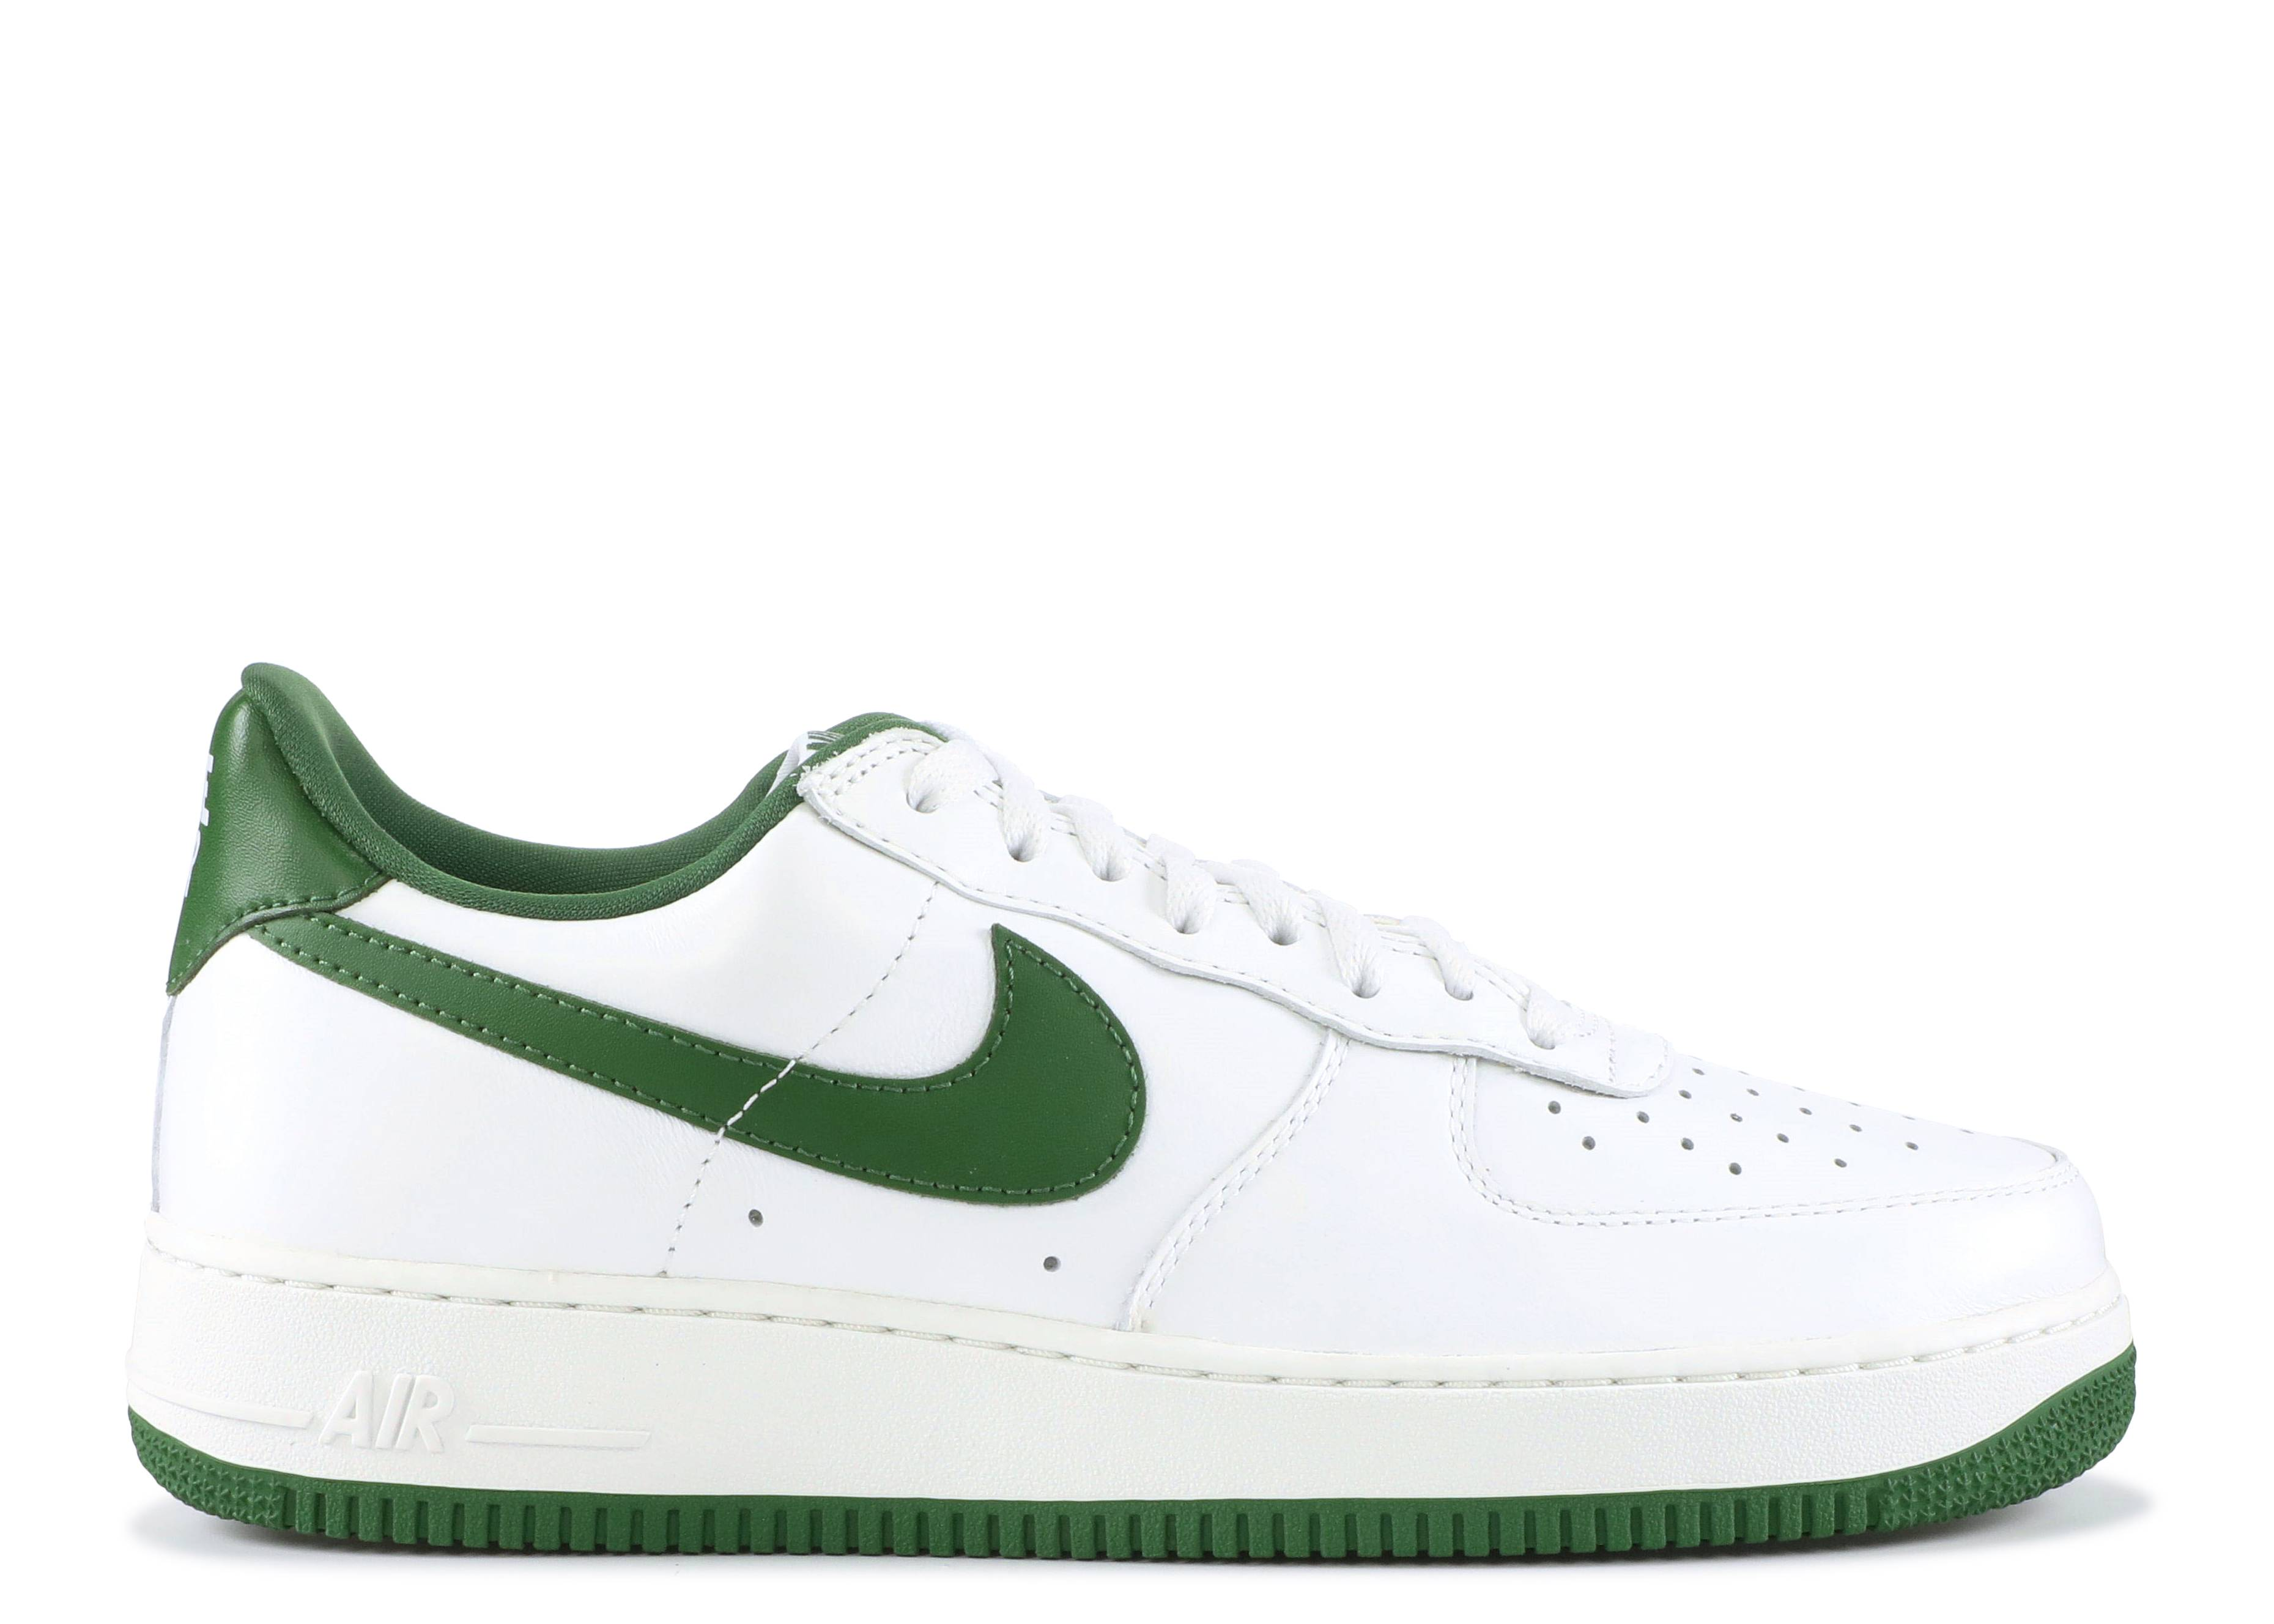 Unusual Nike Air Force 1 Low Retro + Summit White Forest